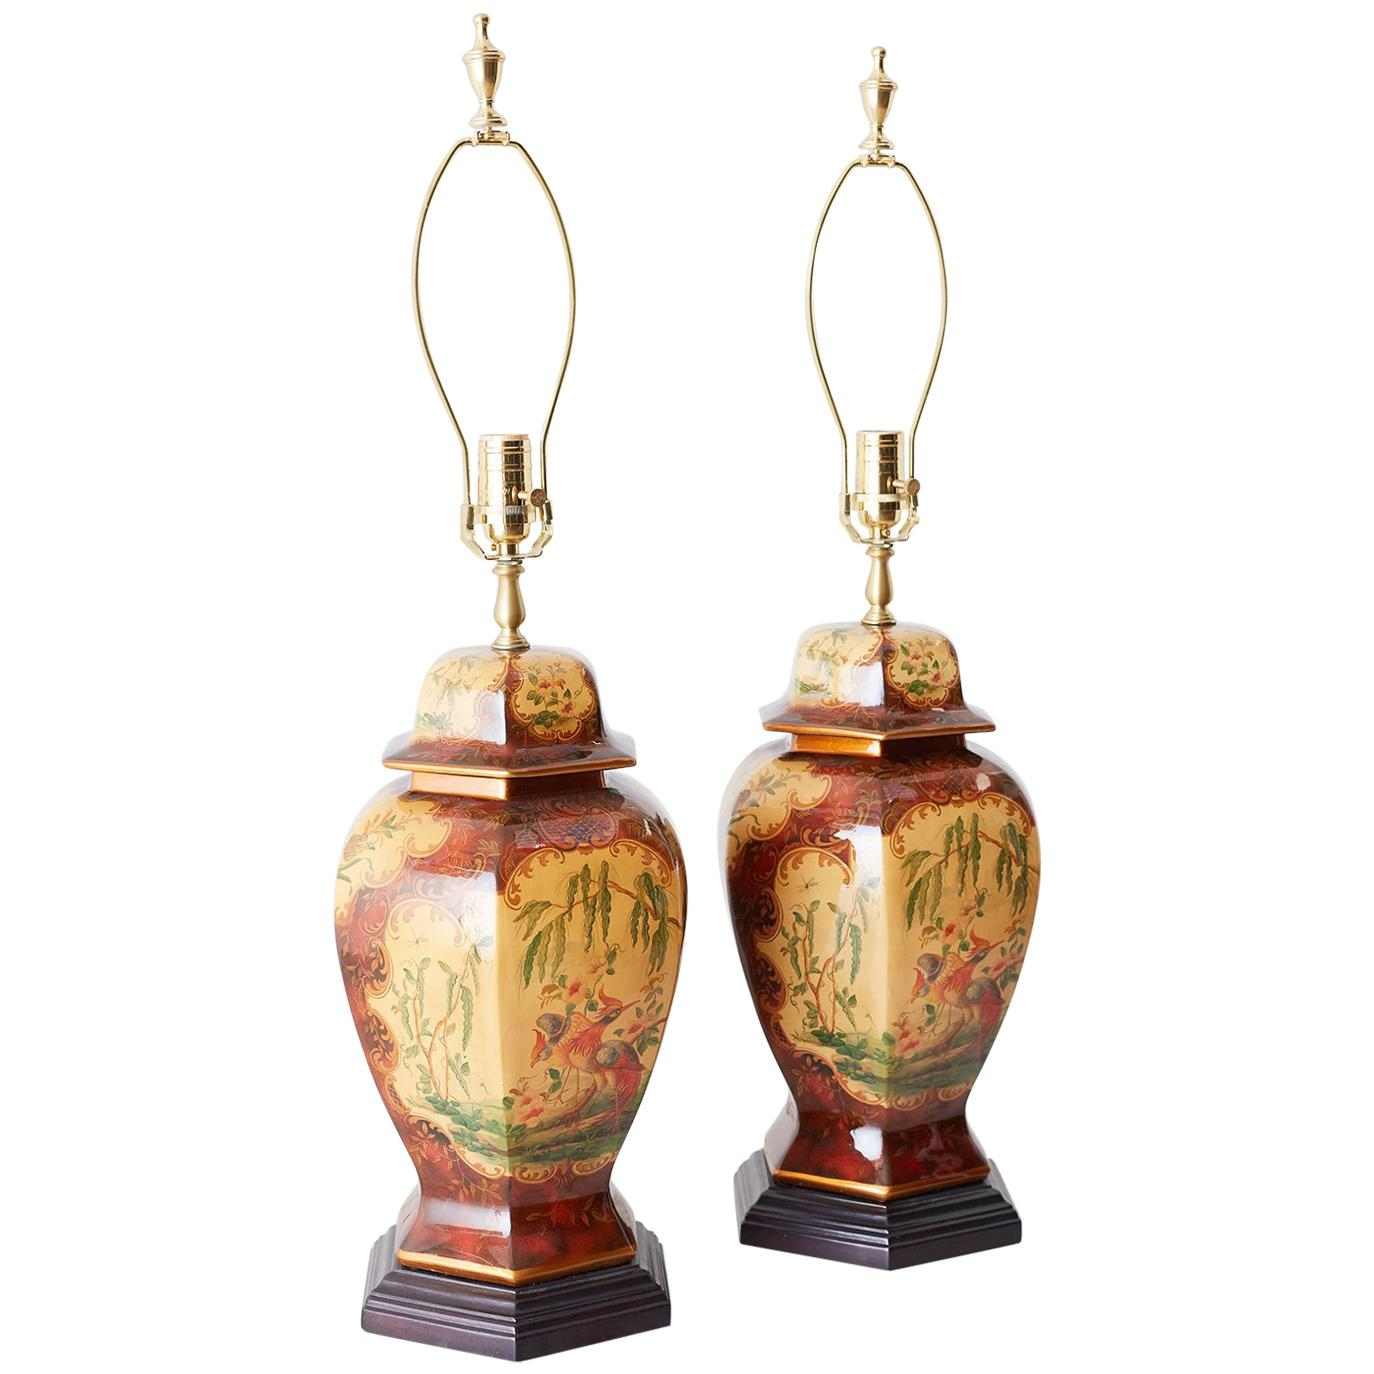 Pair of Chinoiserie Glazed Ginger Jar Table Lamps